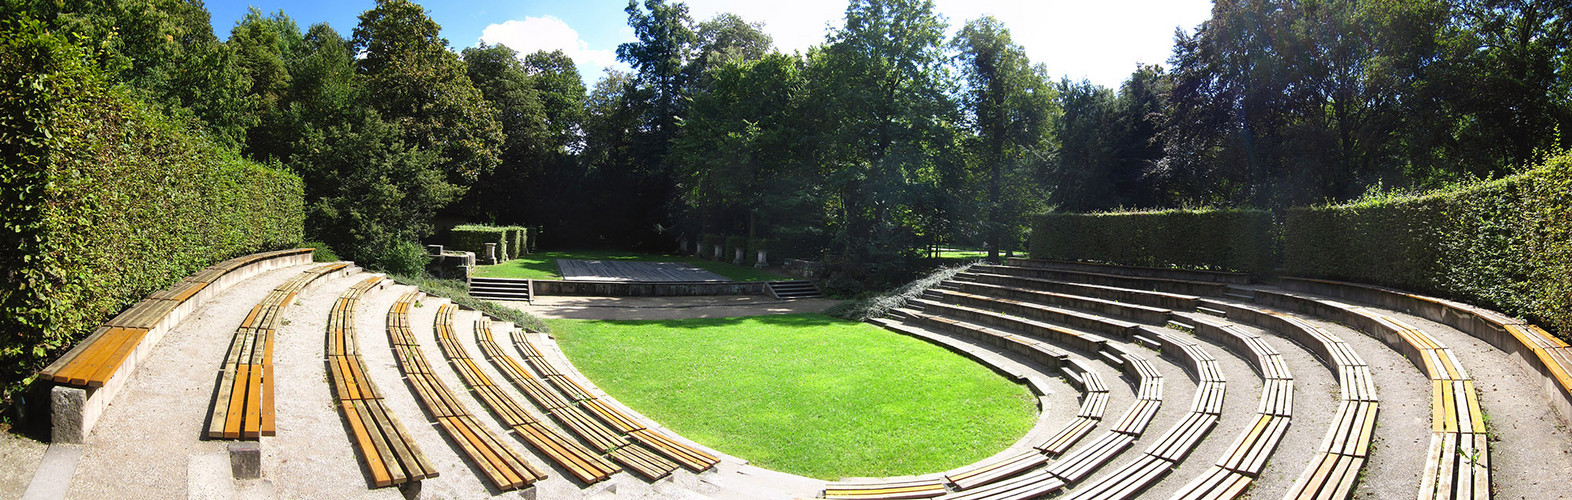 amphitheater im gro en garten dresden foto bild architektur profanbauten orte der kunst. Black Bedroom Furniture Sets. Home Design Ideas